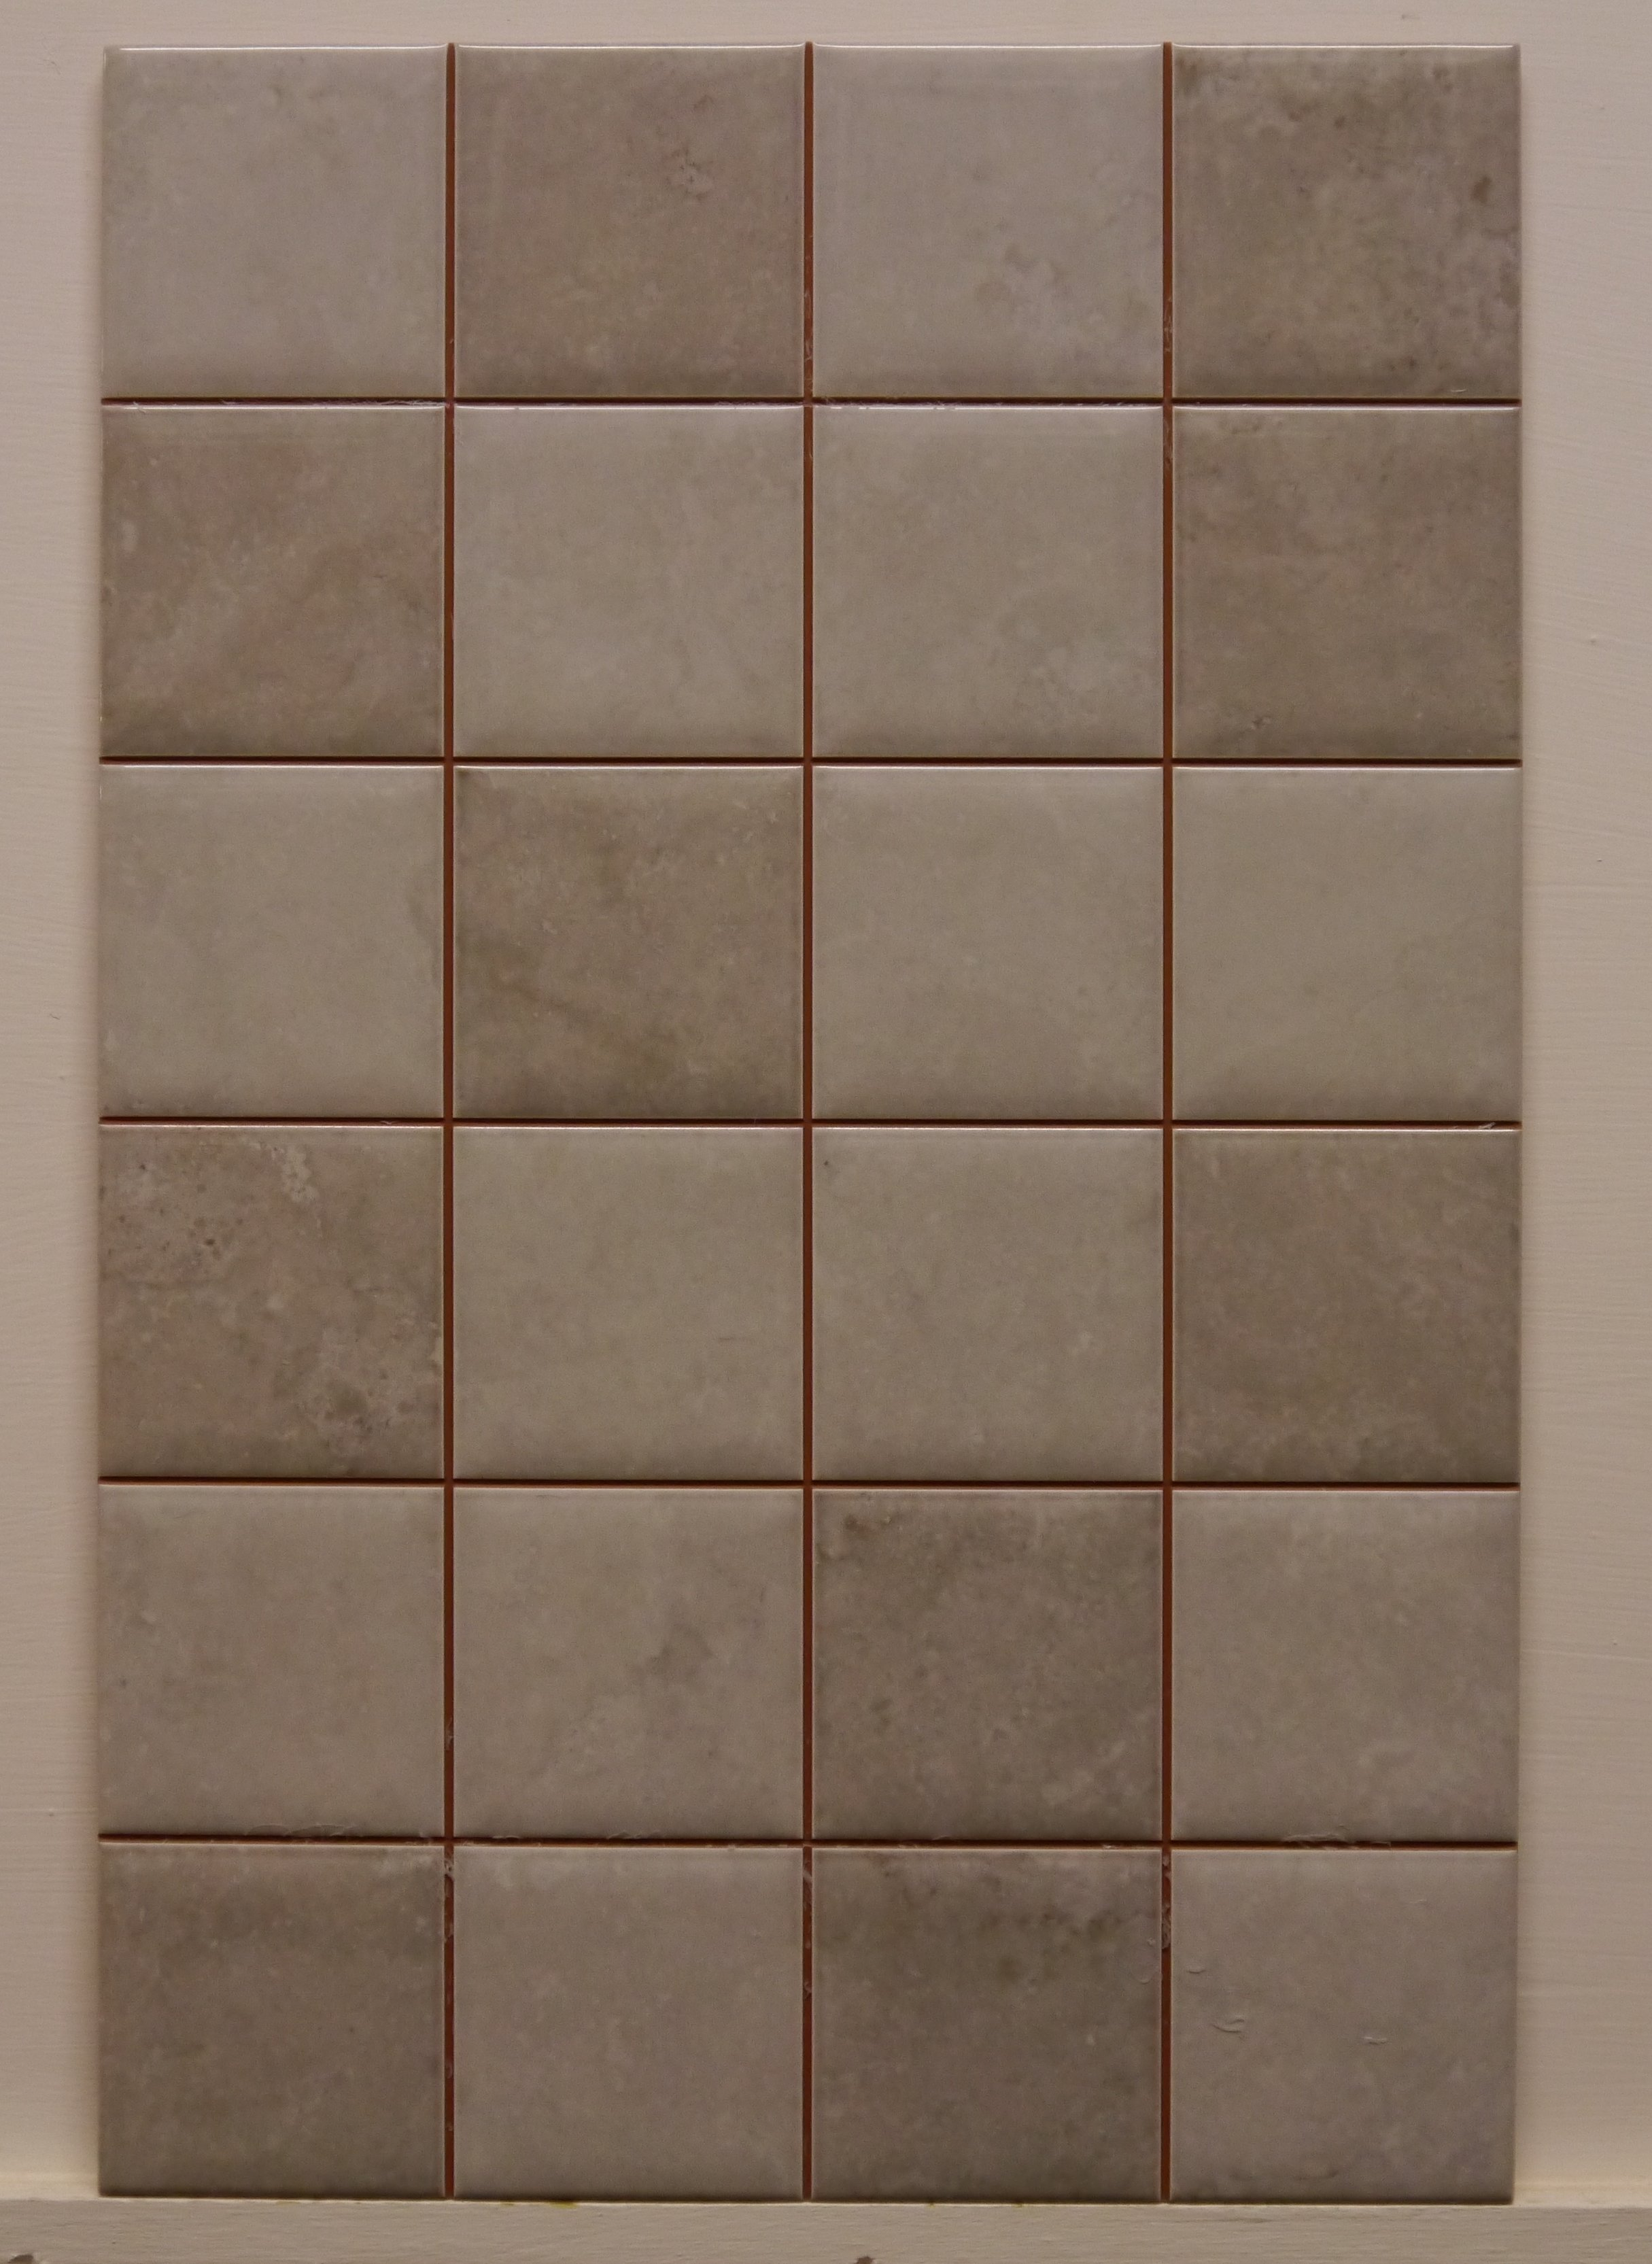 M9161 316mm x 480mm taupe ceramic feature tile the tile warehouse maldon essex Ceramic tile store